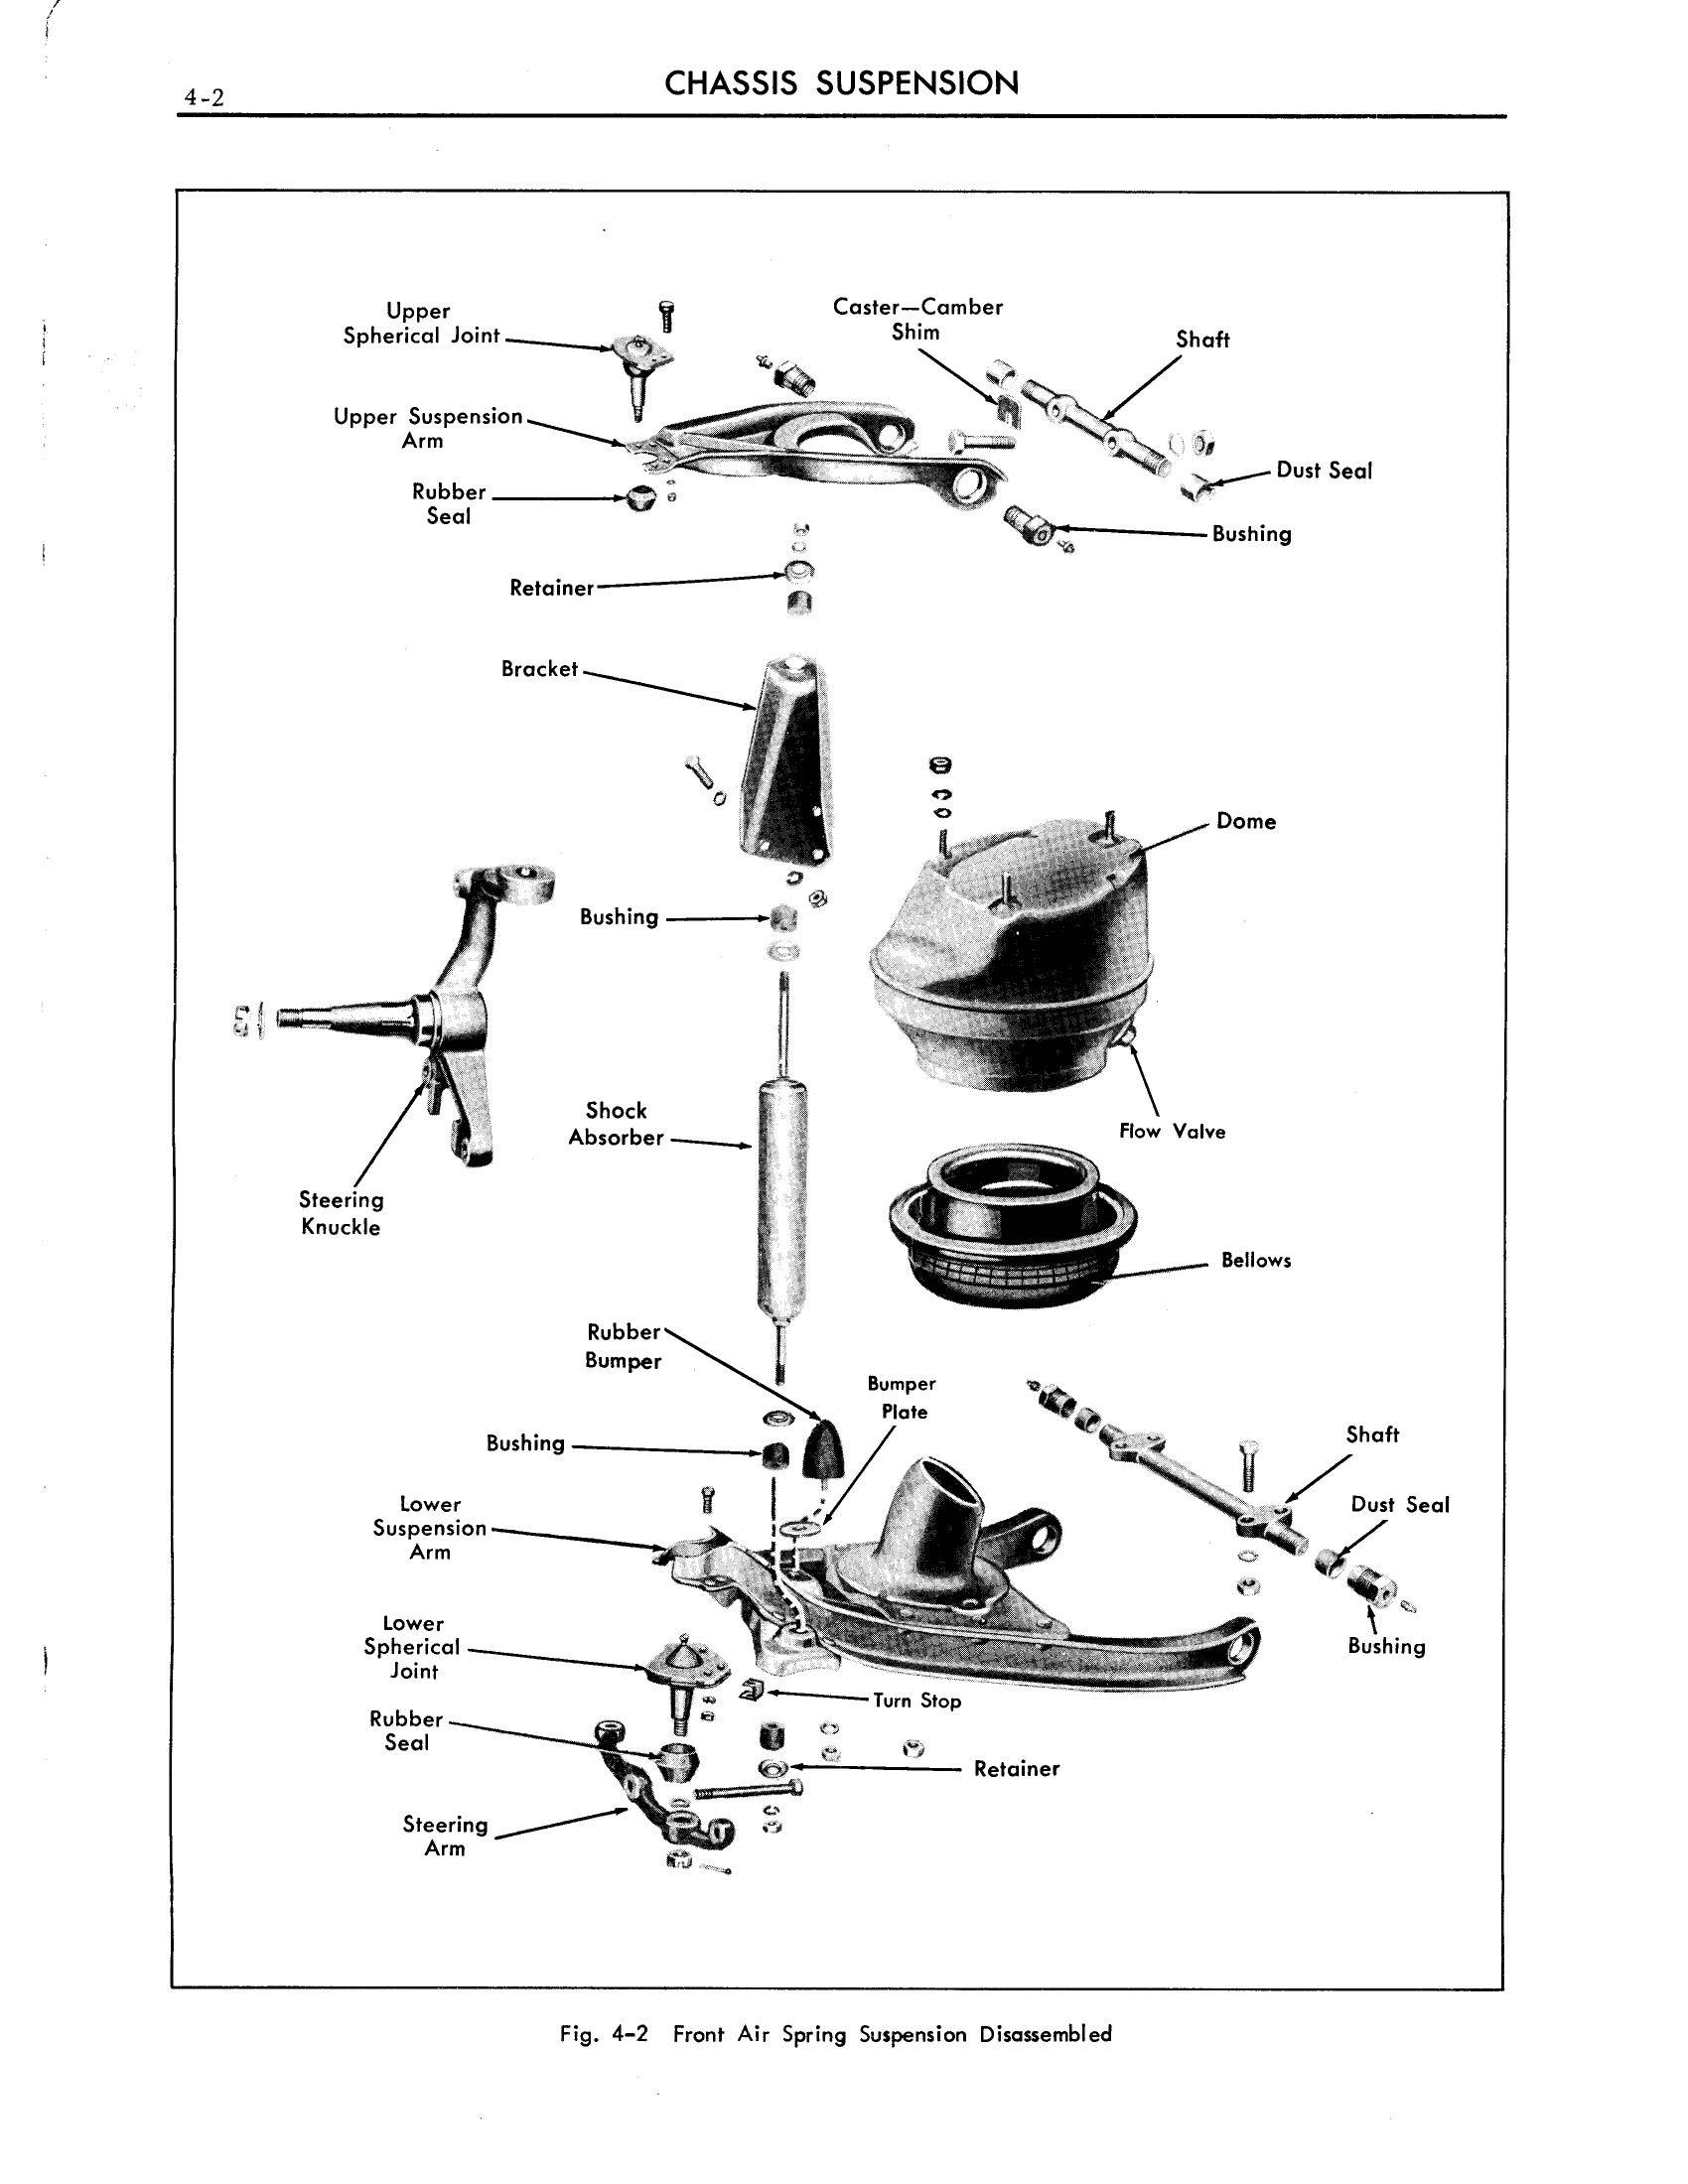 1959 Cadillac Shop Manual- Chassis Suspension Page 2 of 57